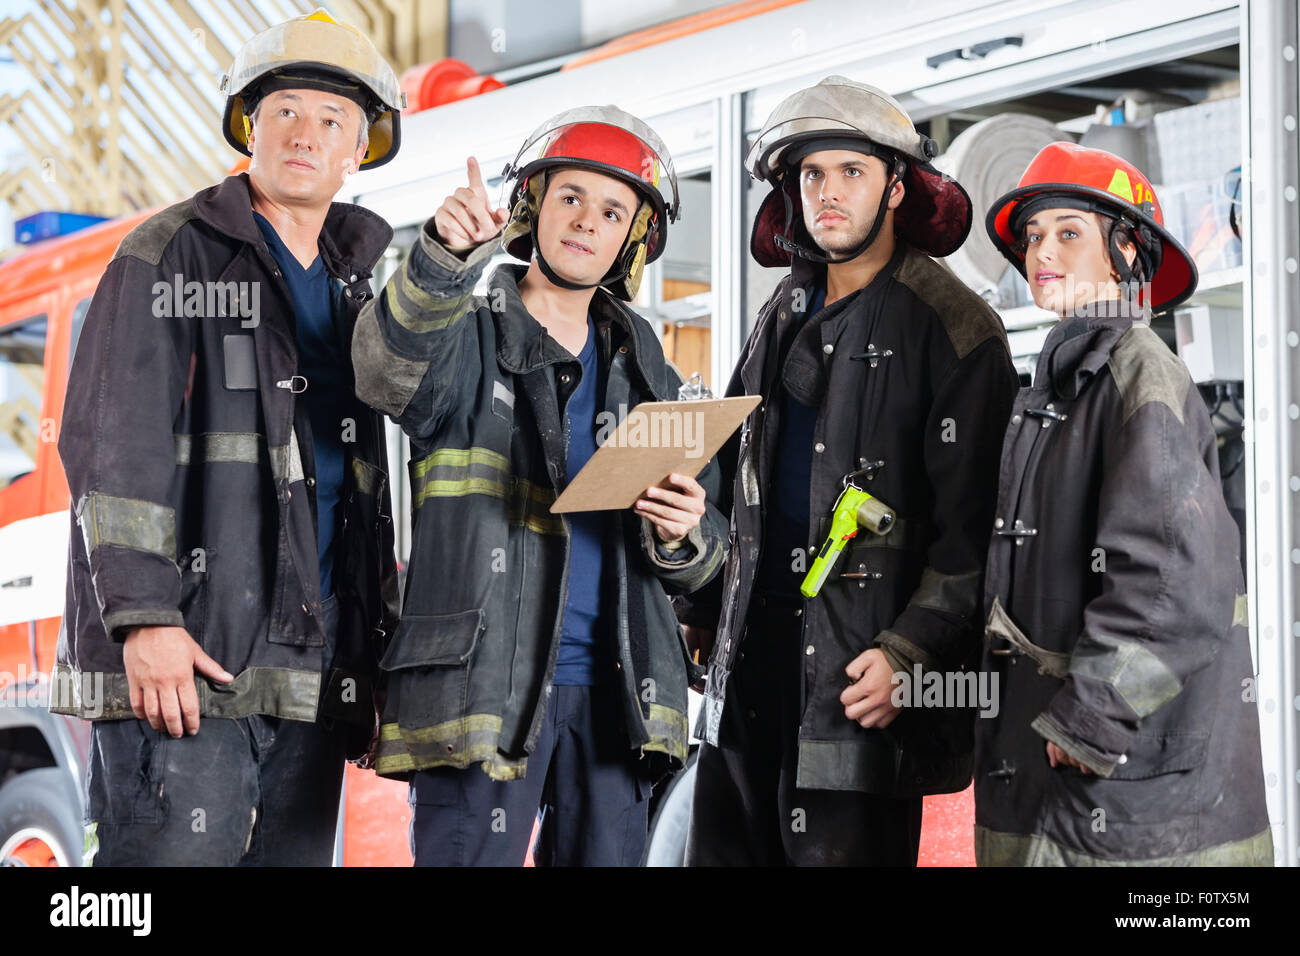 Firefighter Showing Something To Colleagues - Stock Image